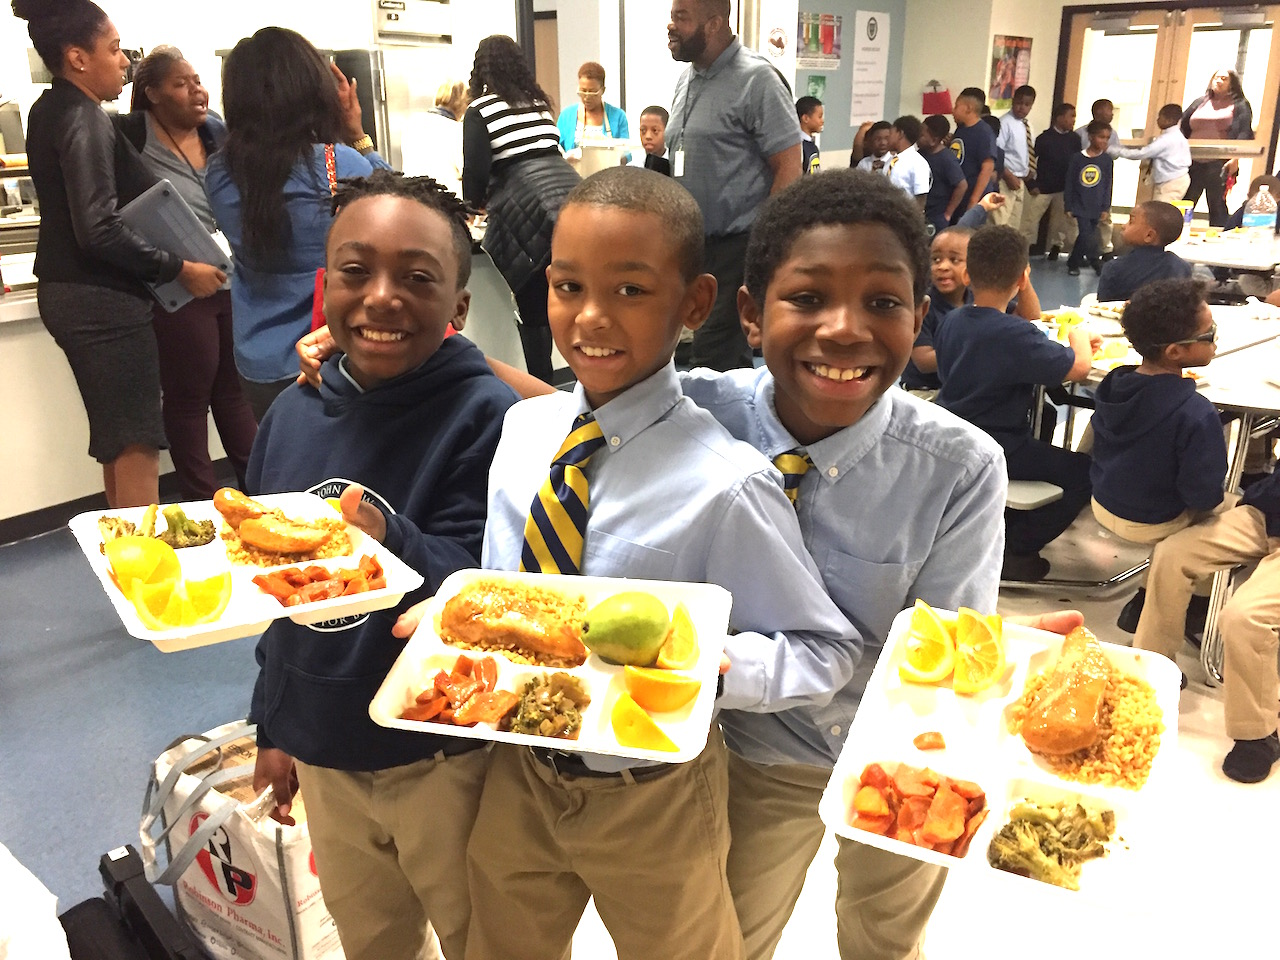 Healthy school meal support in the U.S.